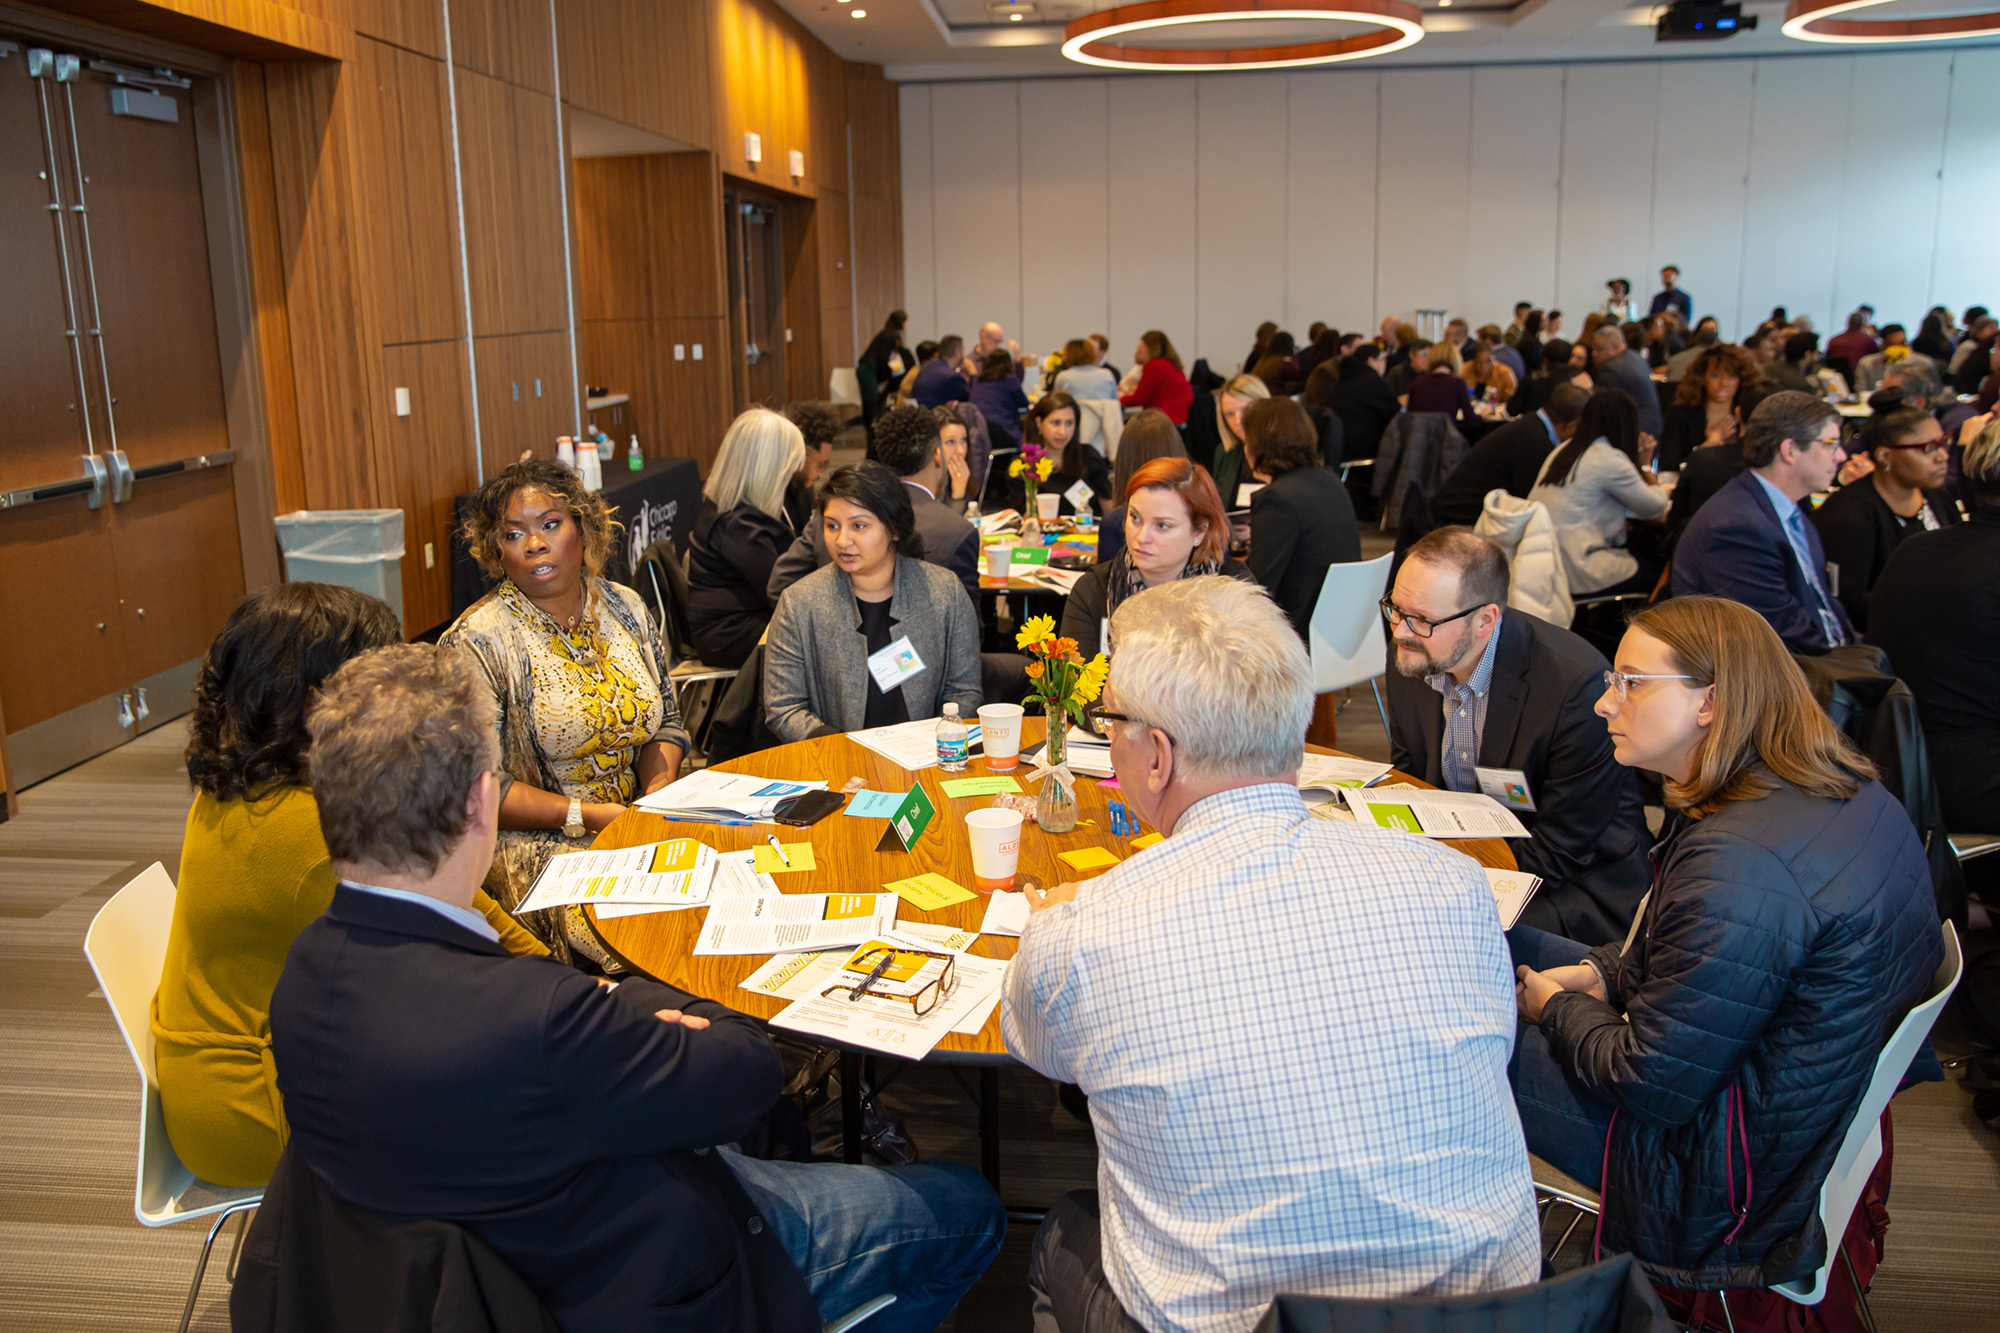 People sitting around table at a conference